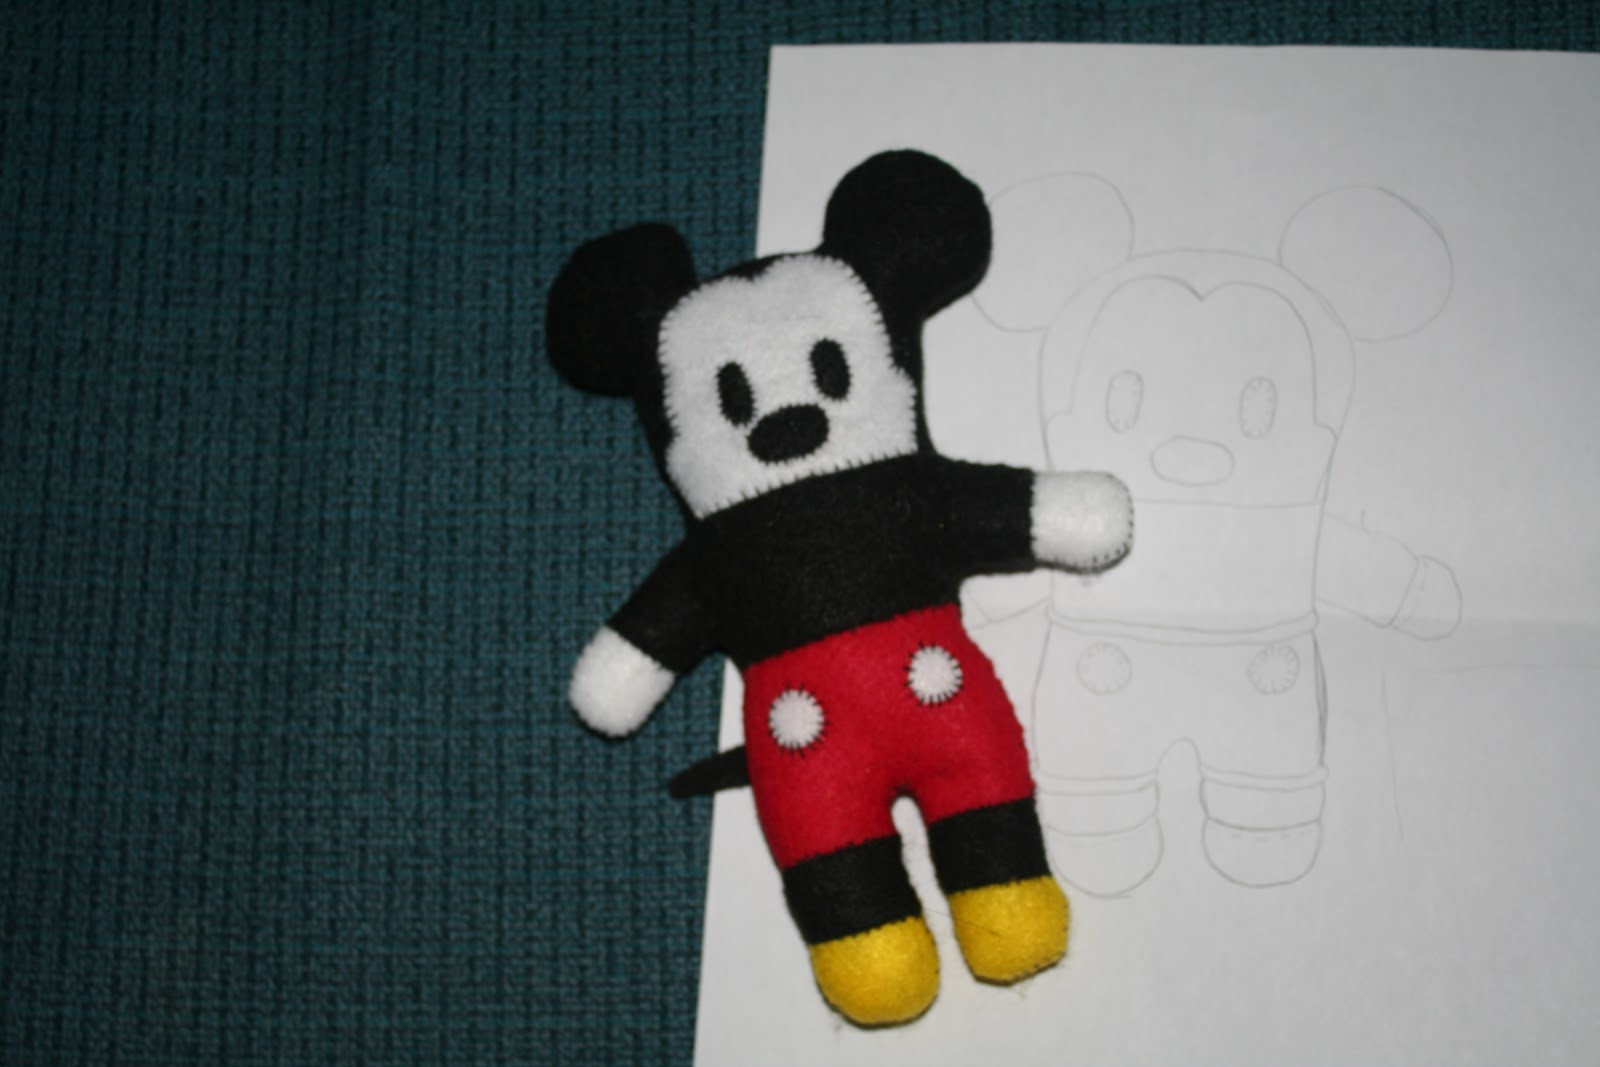 The better Real Life: DIY Mickey Mouse 2D plushie including free pattern